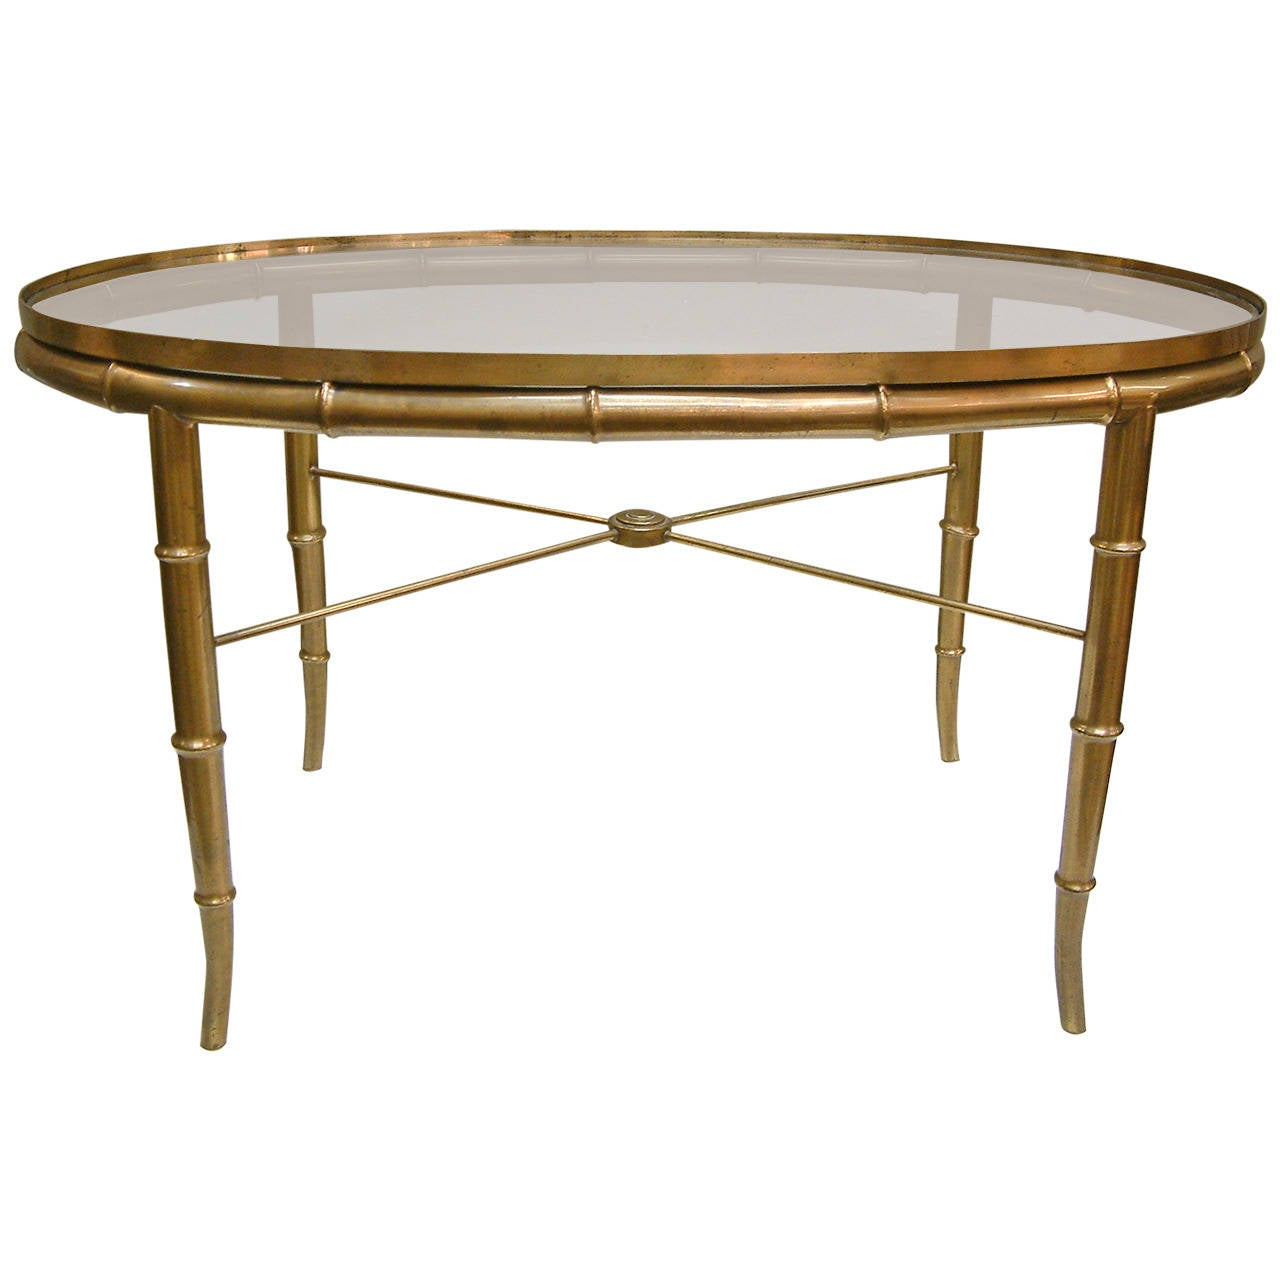 Italian Brass Faux Bamboo And Glass Table Attributed To Mastercraft Circa 1960 At 1stdibs